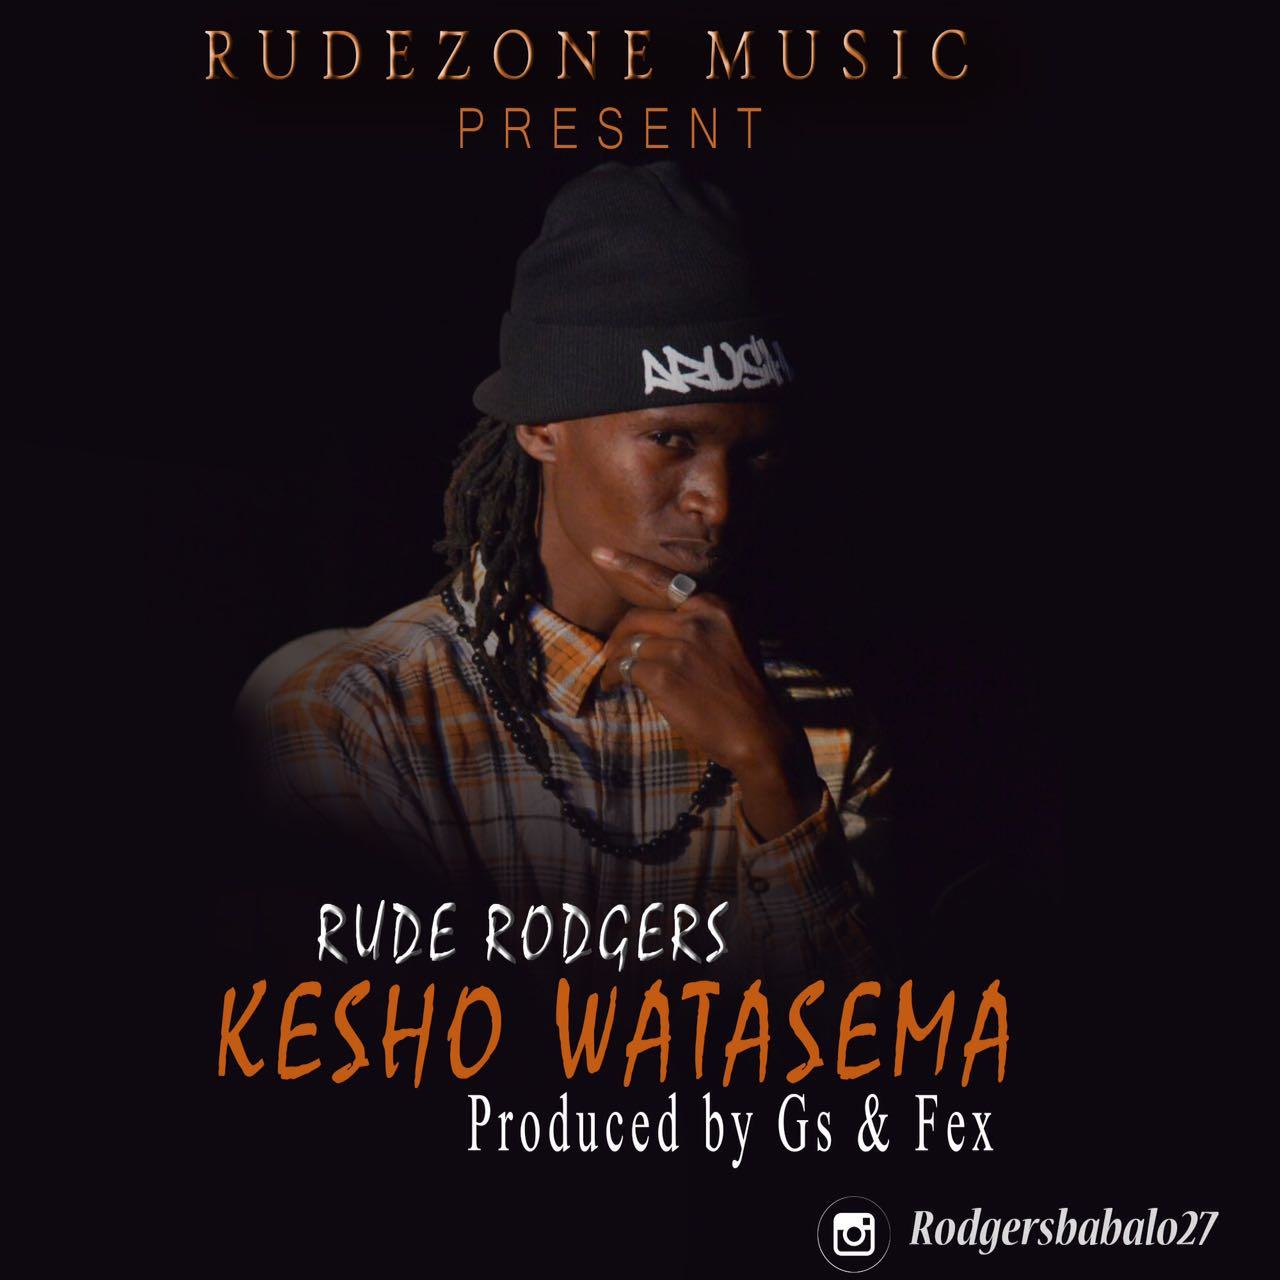 Rude Rodgers - Huu ni Mwanzo ft sightmore,,panishit